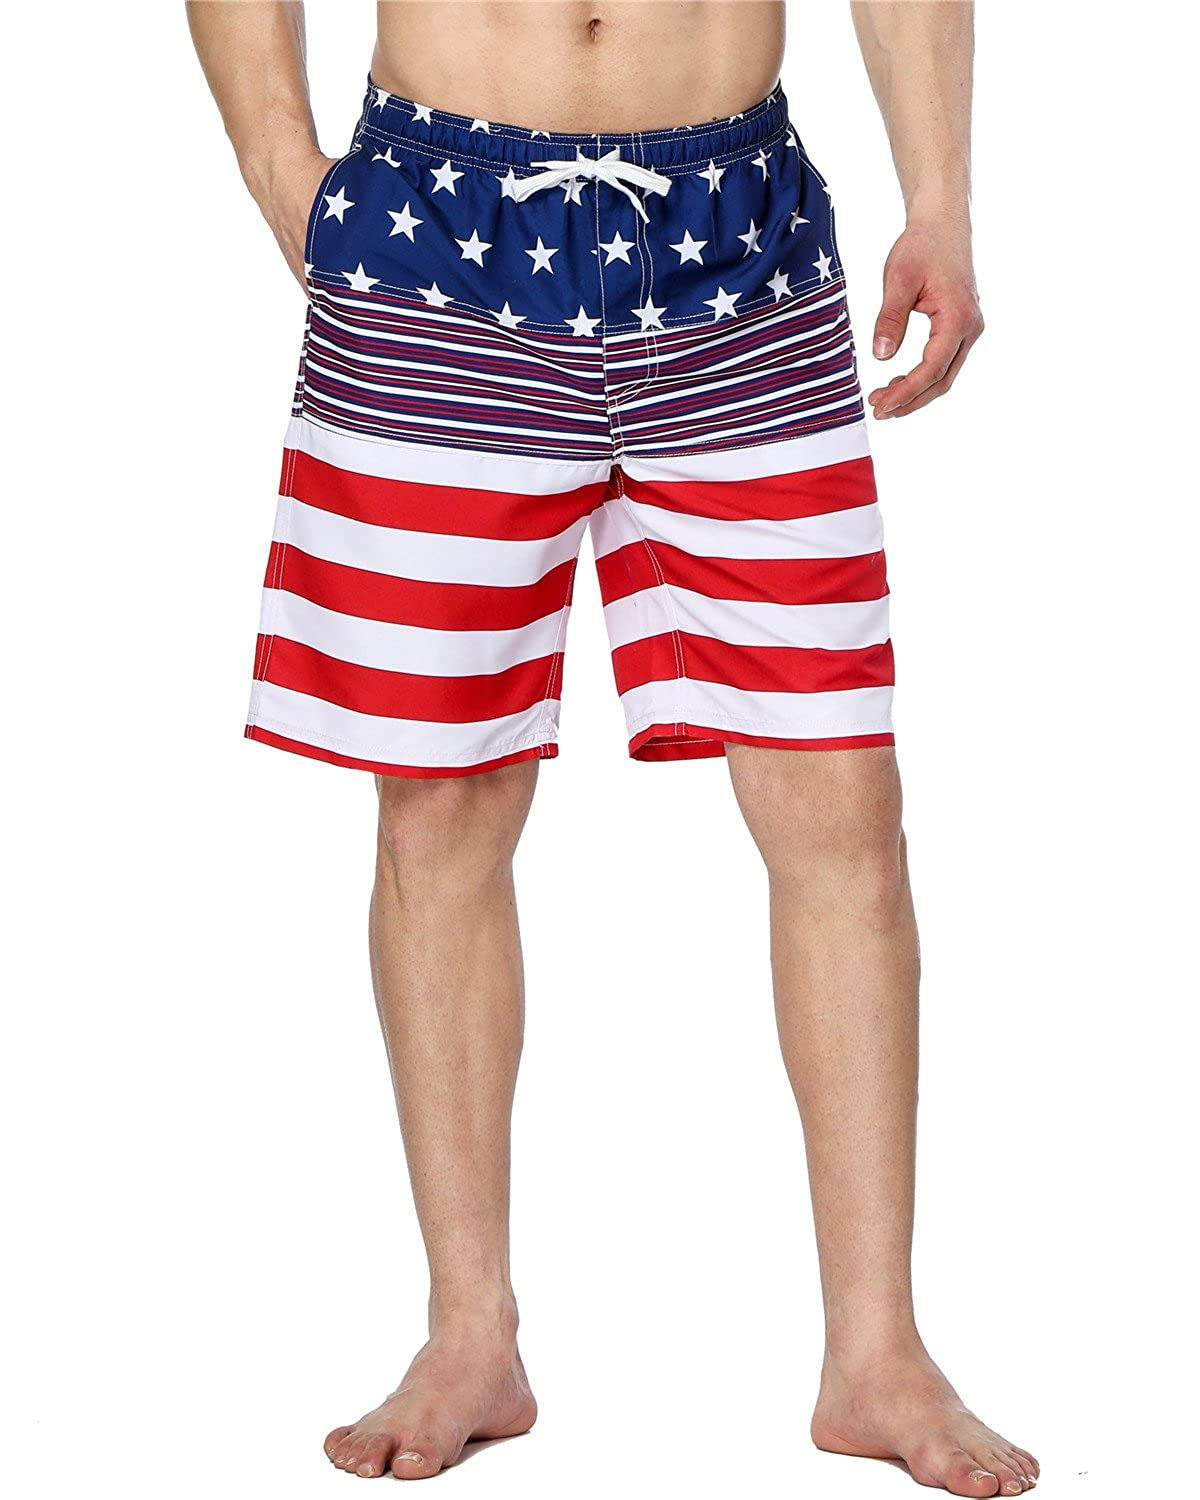 7c0f7f3b33 Mens lightweight board short featuring American USA flag print. Elastic  waistband with drawstring in front to tighten or loosen